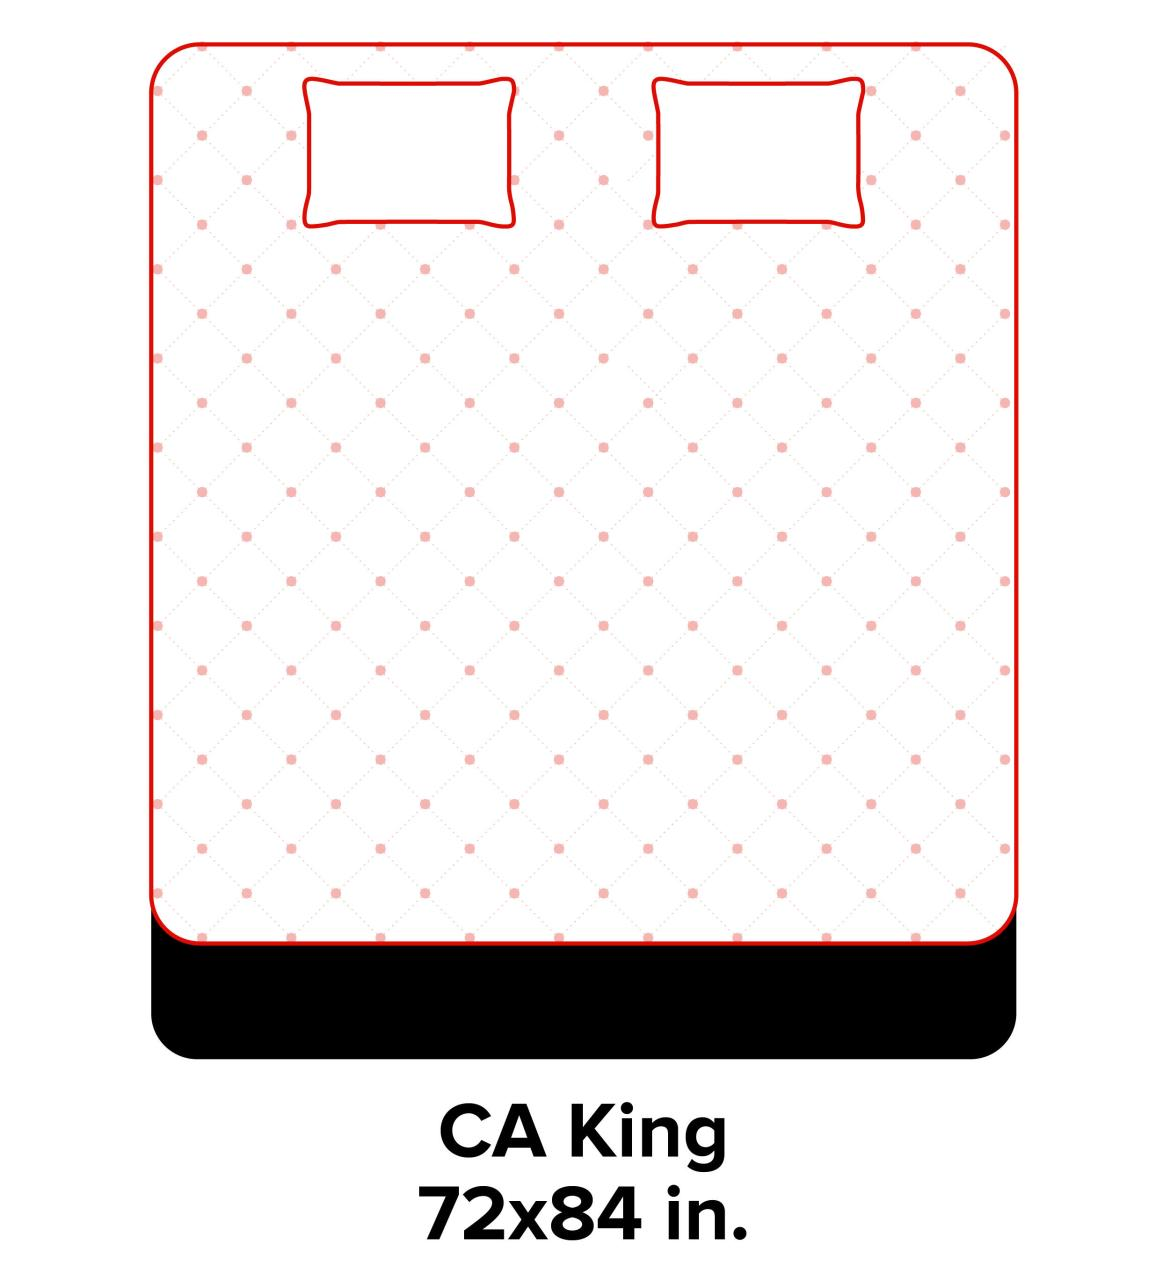 mattress-size-guide-graphic-cnet-ca-king